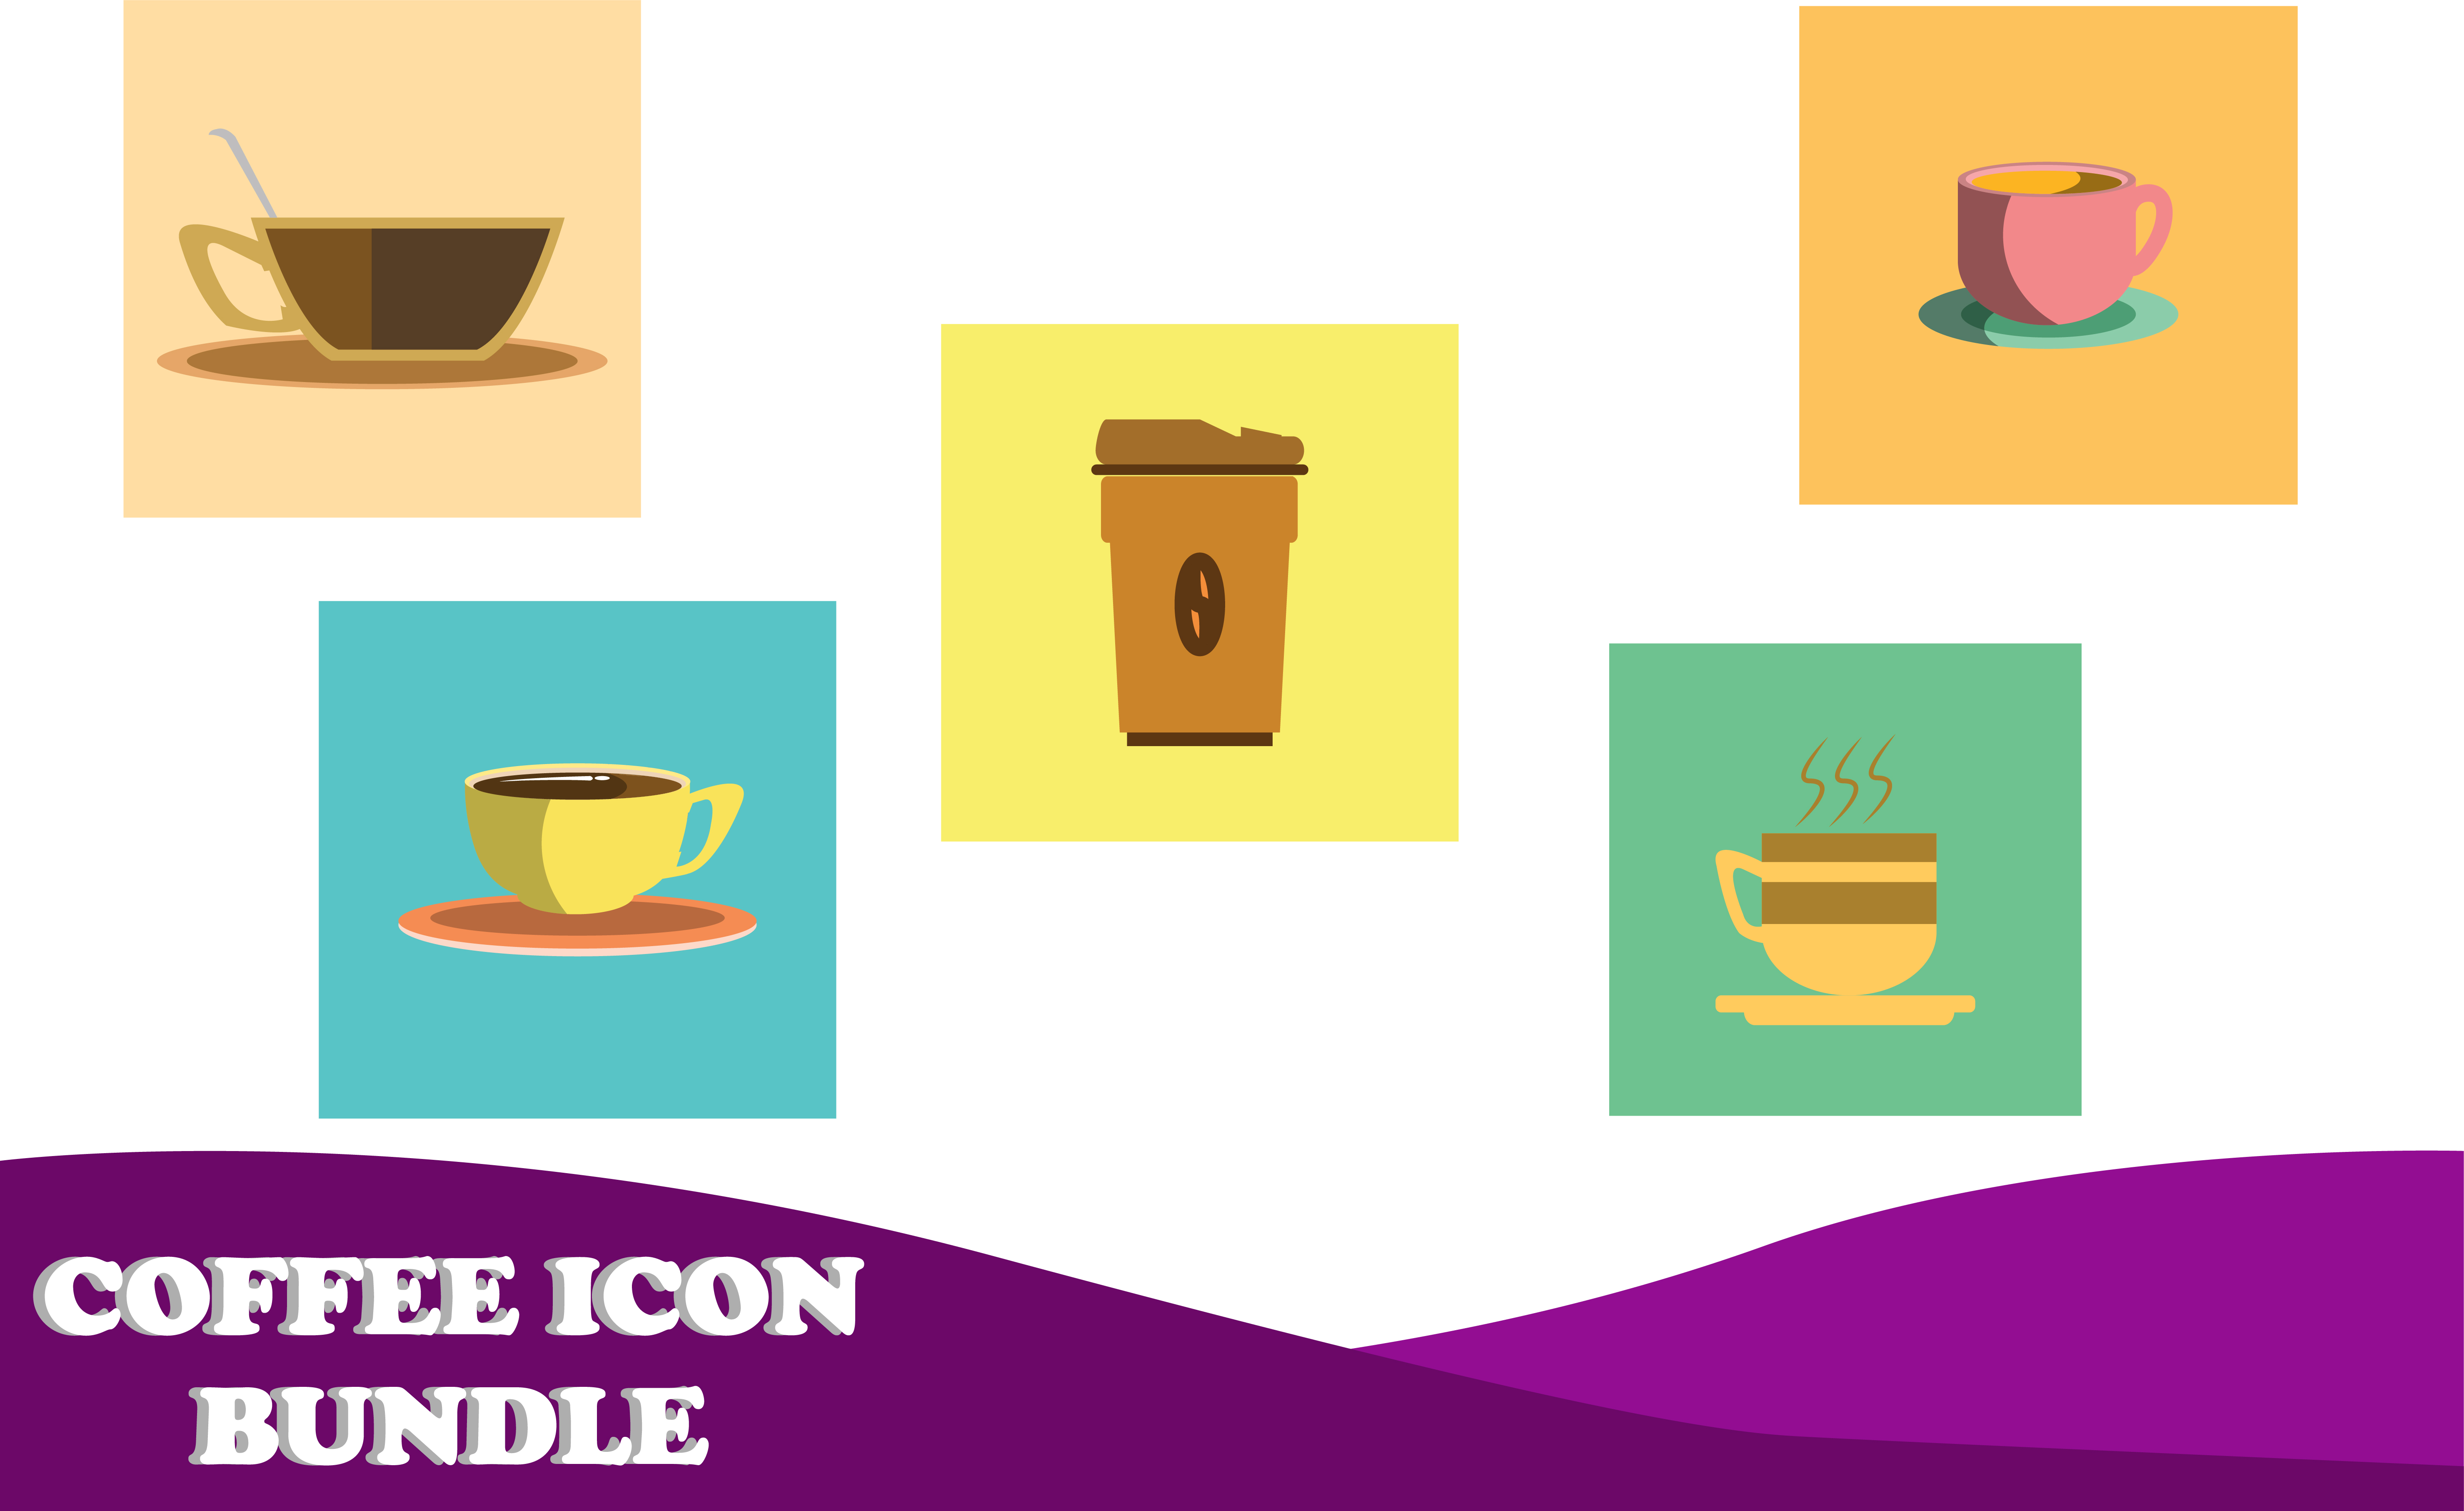 Download Free Coffee Icon Vector Design Set Graphic By Purplebubble Creative for Cricut Explore, Silhouette and other cutting machines.